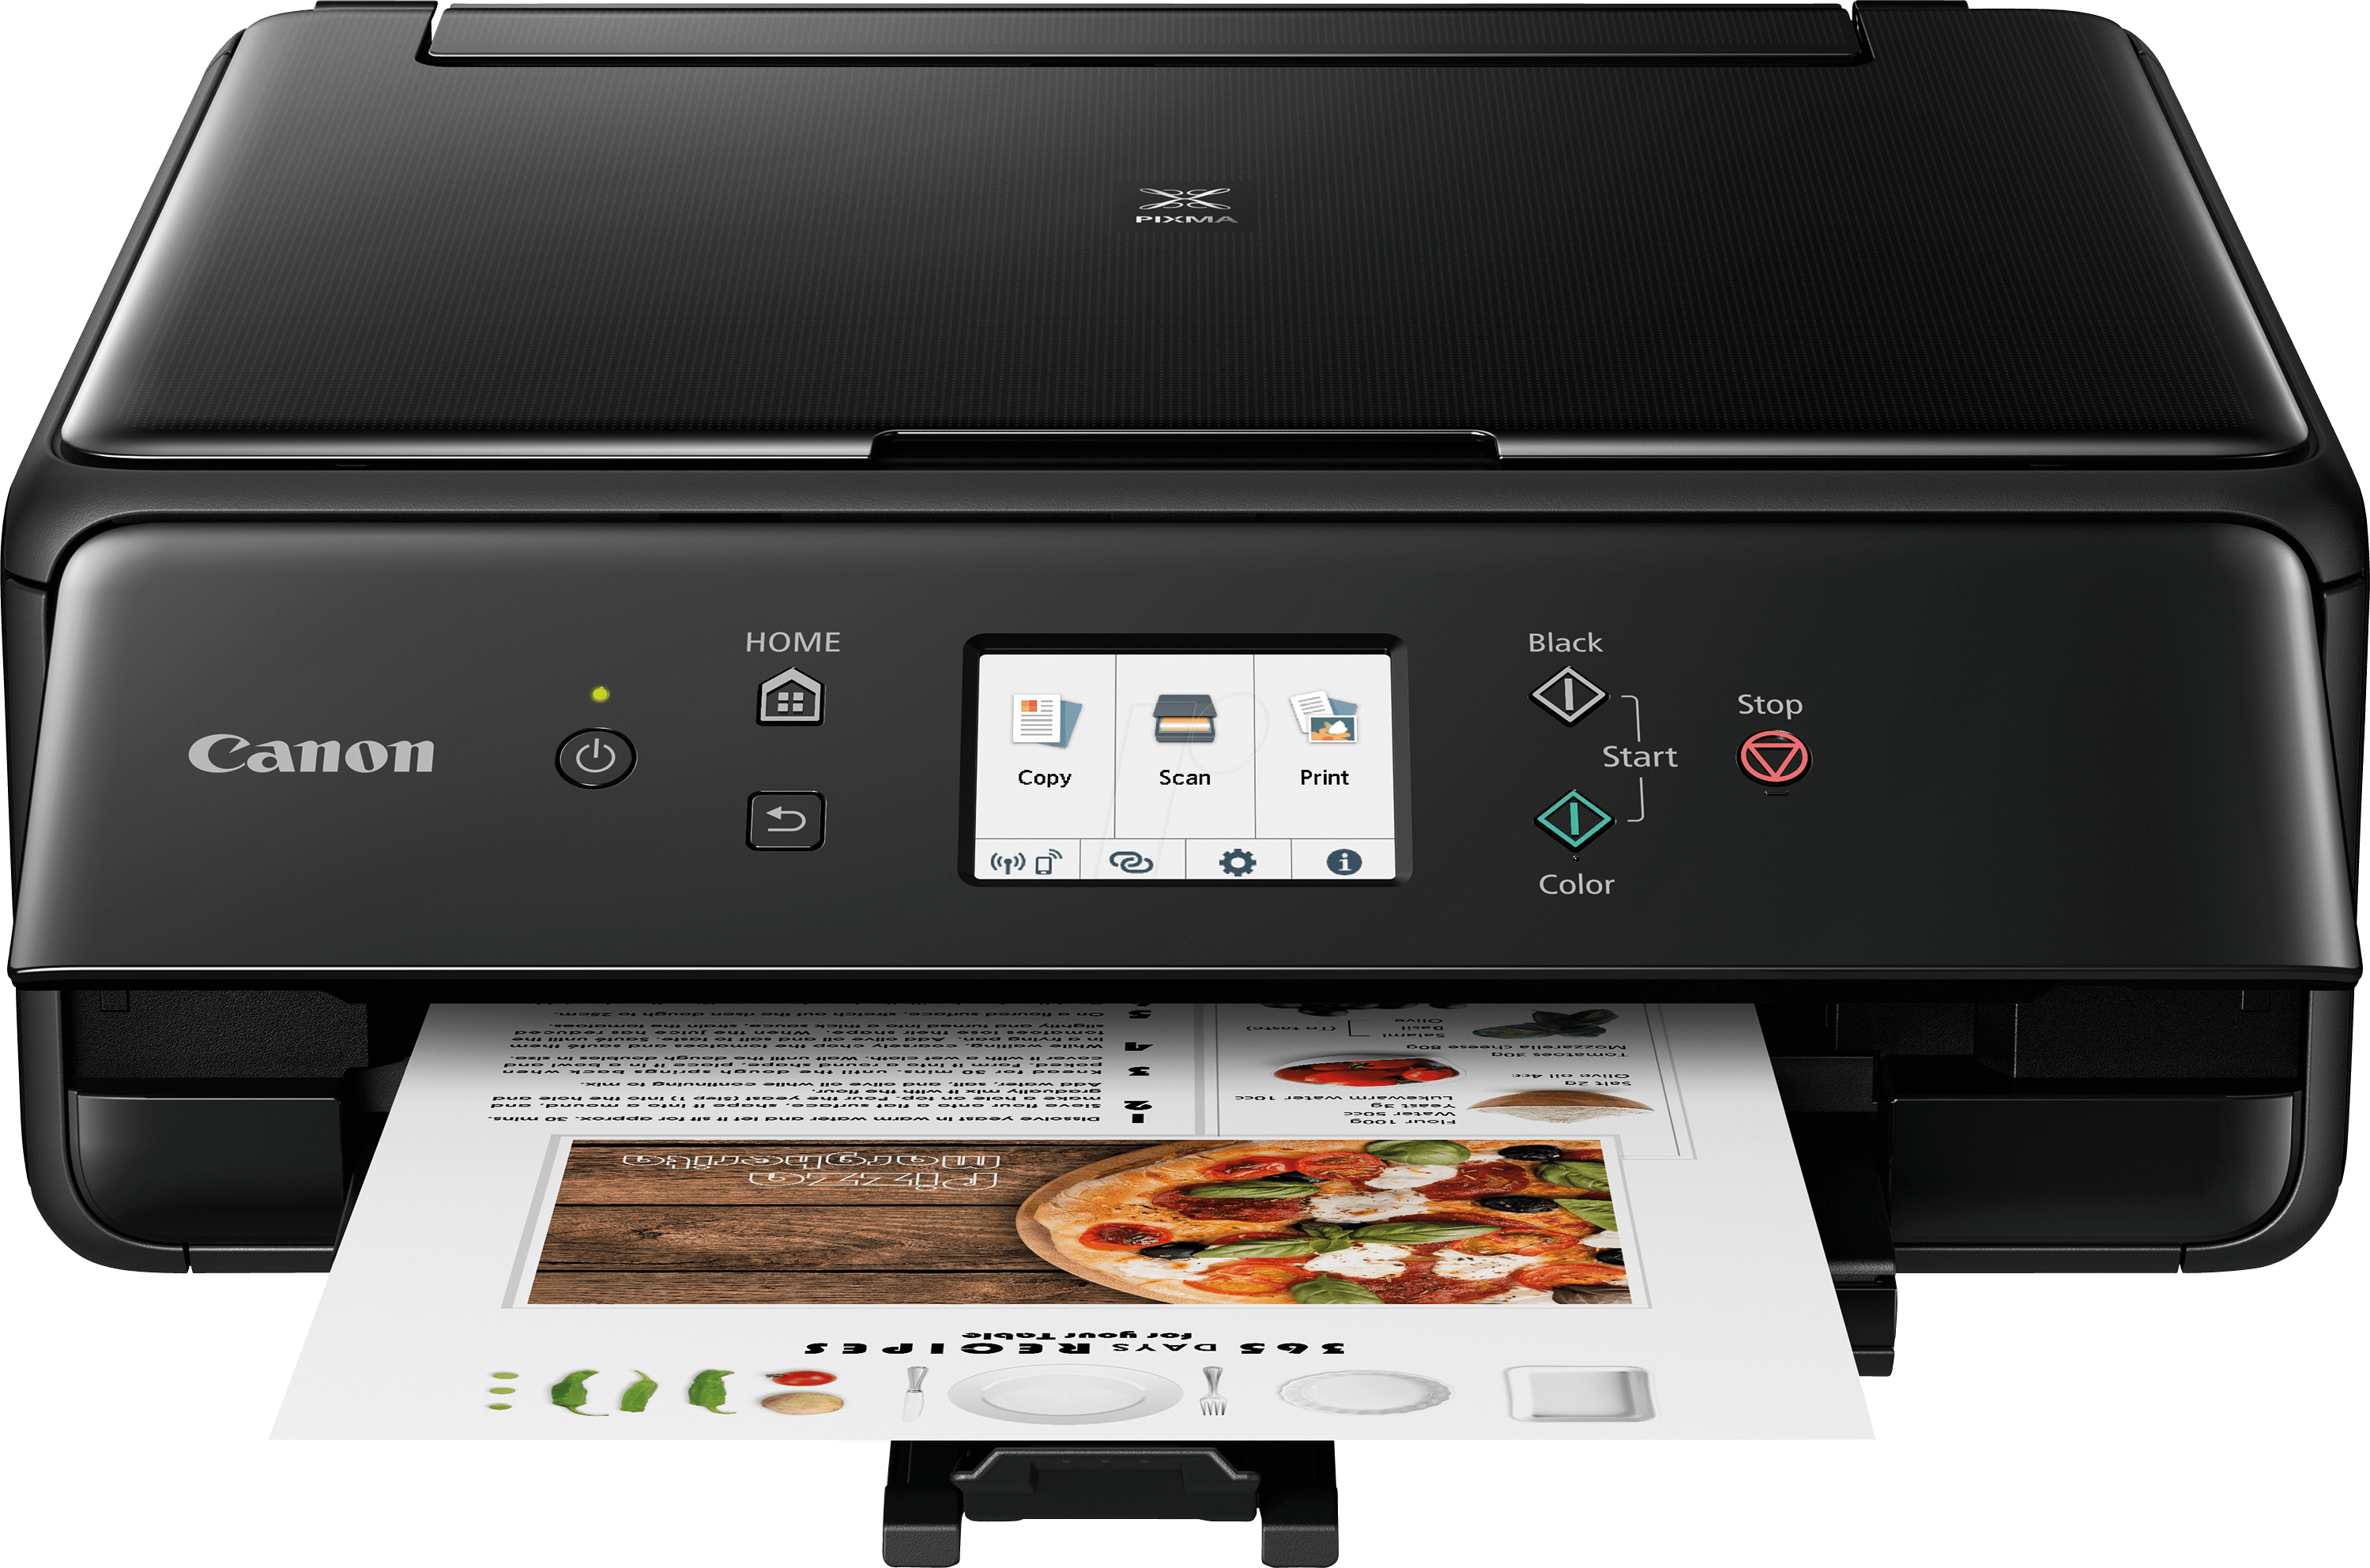 CANON TS6250 - Printer, ink, 3-in-1, Wi-Fi, duplex